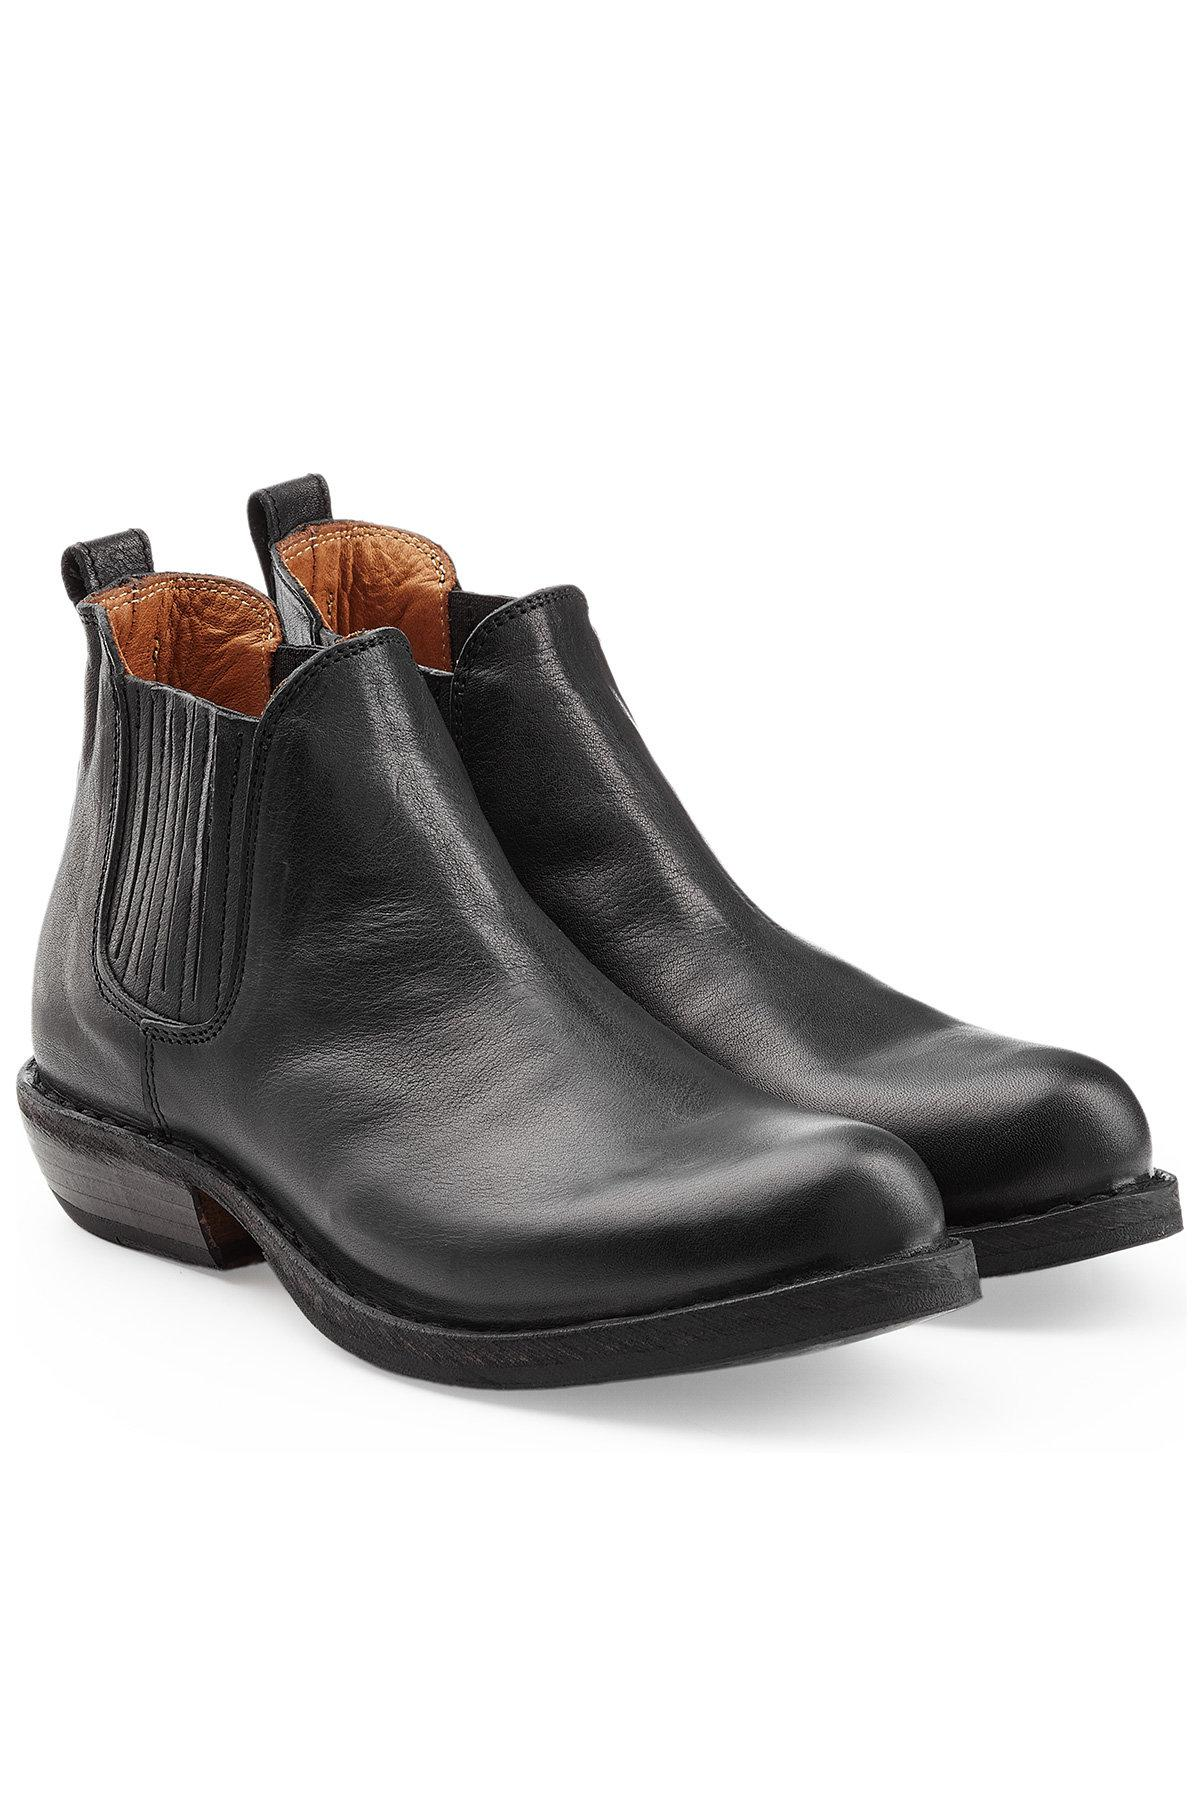 collections FIORENTINI + BAKER Bottines en cuir Carnaby Caris Vente Grande Remise NsgOd3Cj